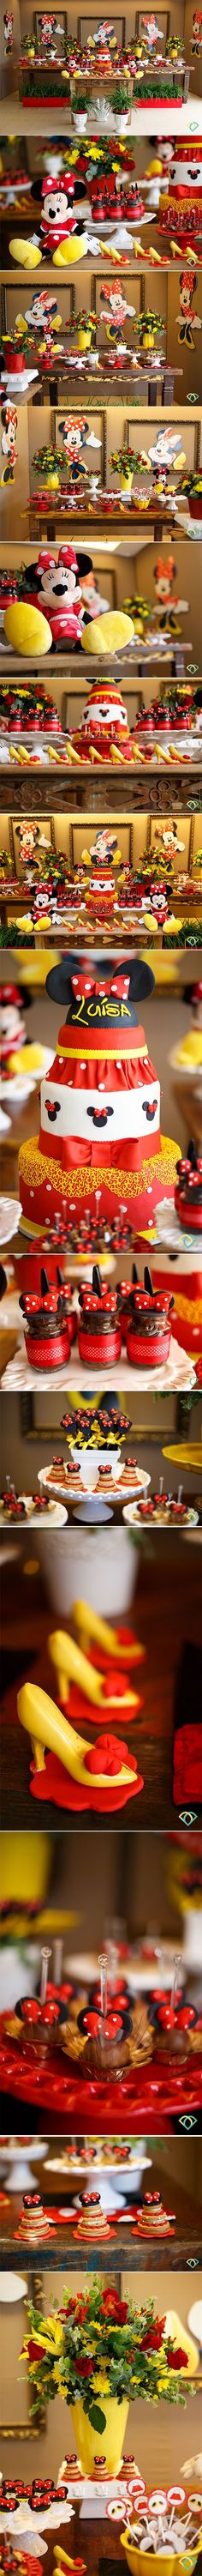 44 Trendy Ideas For Baby Shower Ides Minnie Mouse Theme Minnie Mouse Decorations, Minnie Mouse Theme, Mickey Mouse Parties, Mickey Party, Mickey Mouse Clubhouse, Mickey Mouse Birthday, Baby Party, Baby Shower, Minne